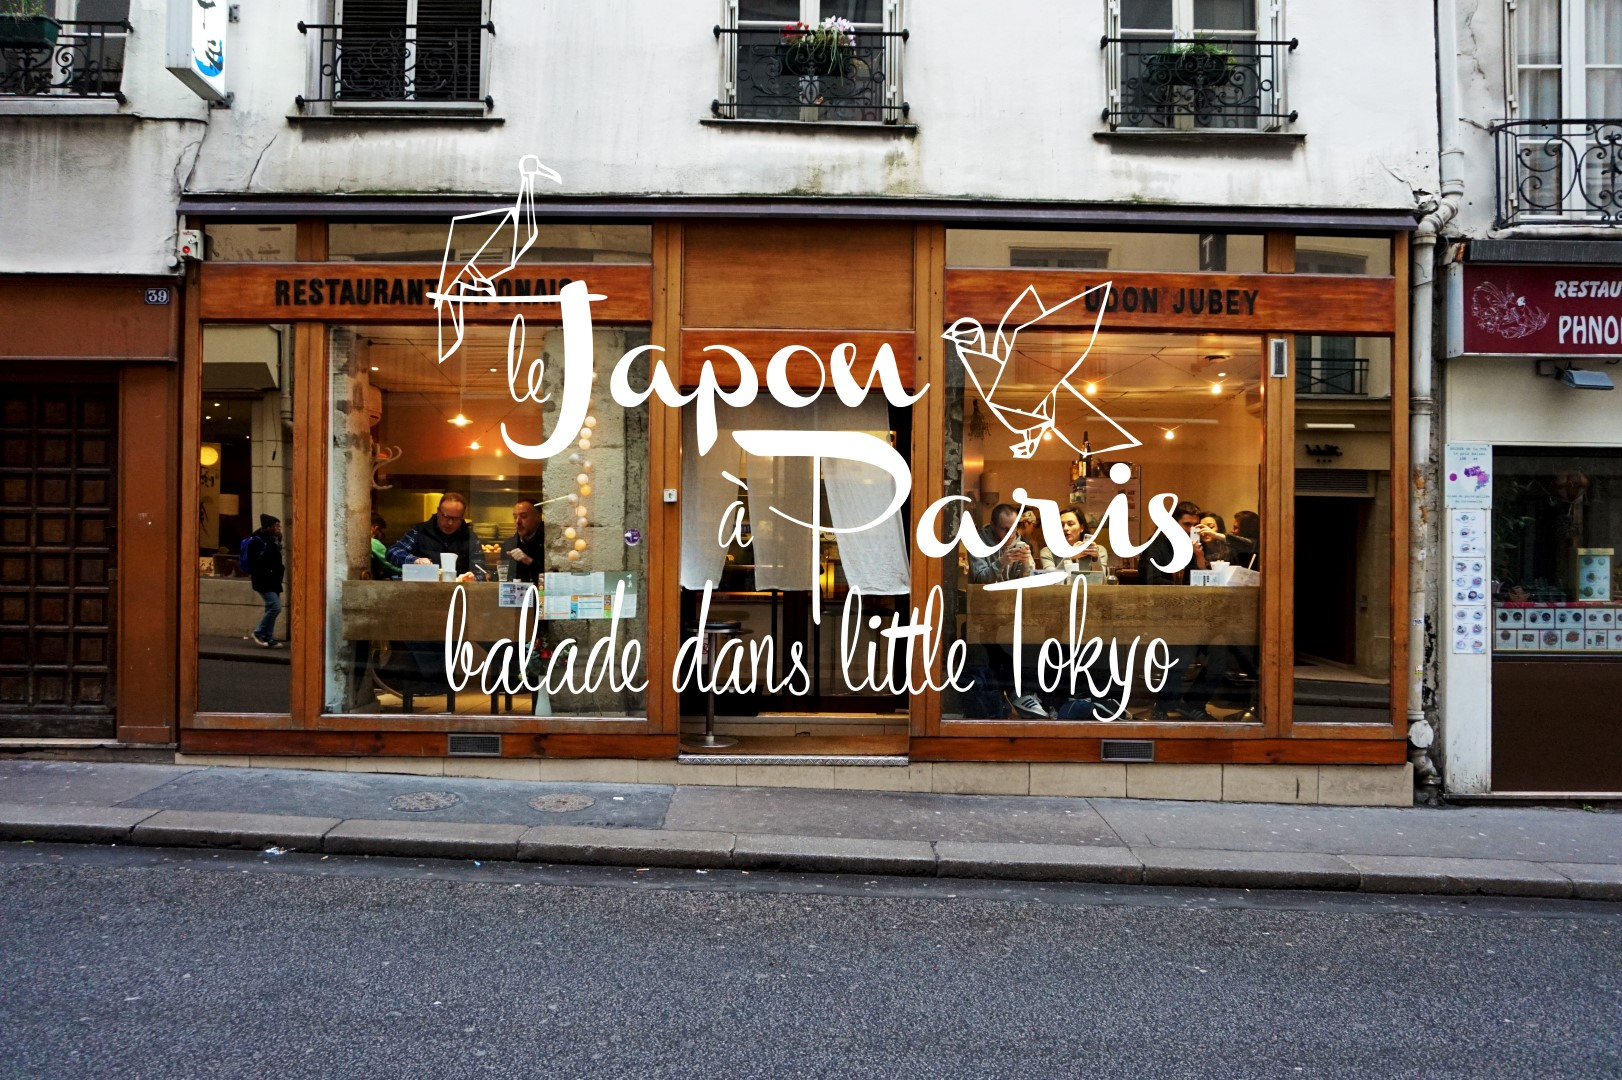 Le japon paris balade dans little tokyo un petit for Mobilier japonais paris